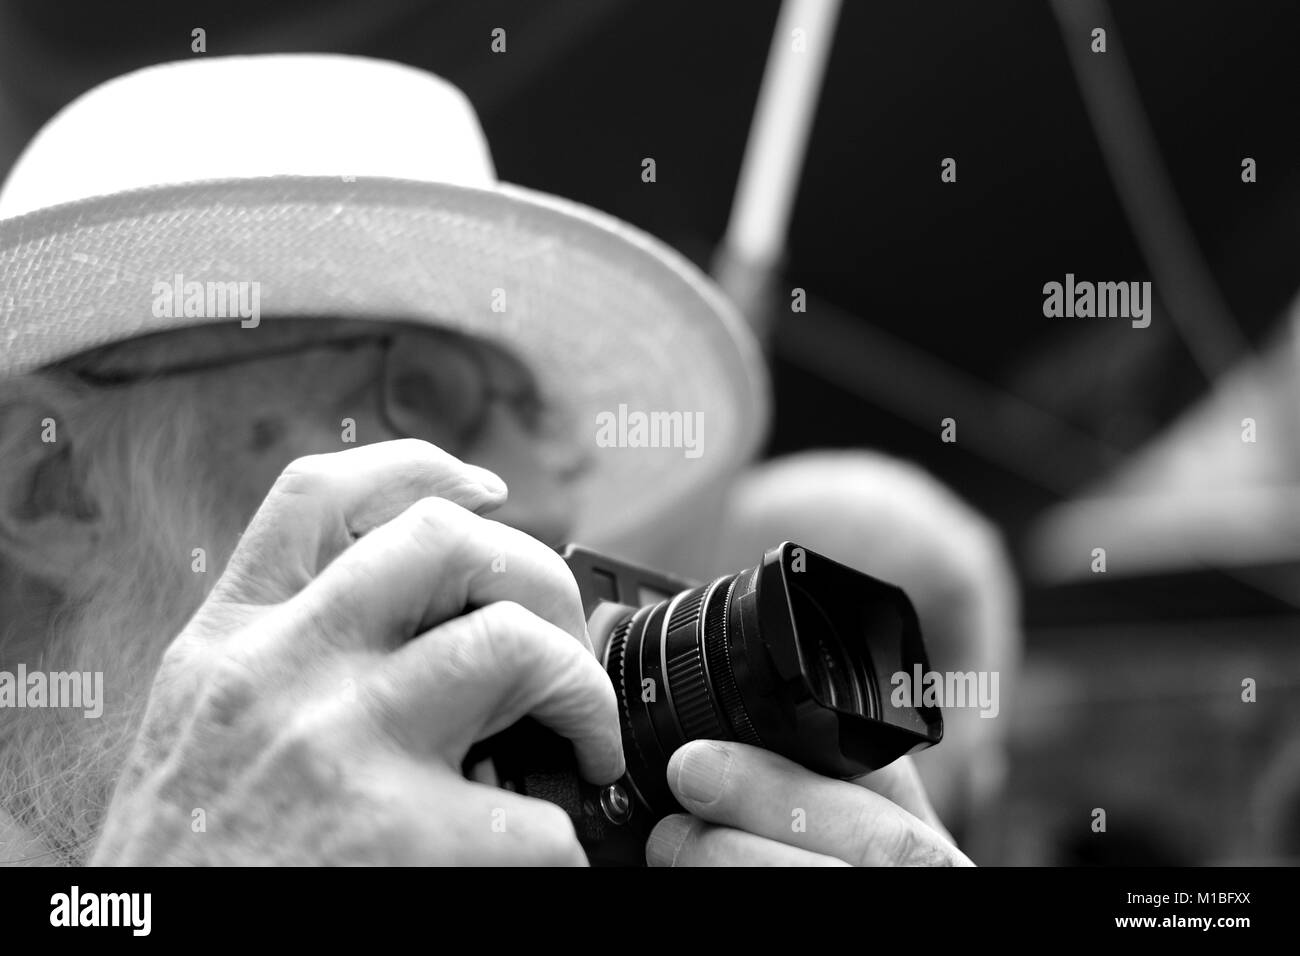 LEICA user photographs the #toriesout Not one day more demonstration London Saturday 1 July 2017 - Stock Image